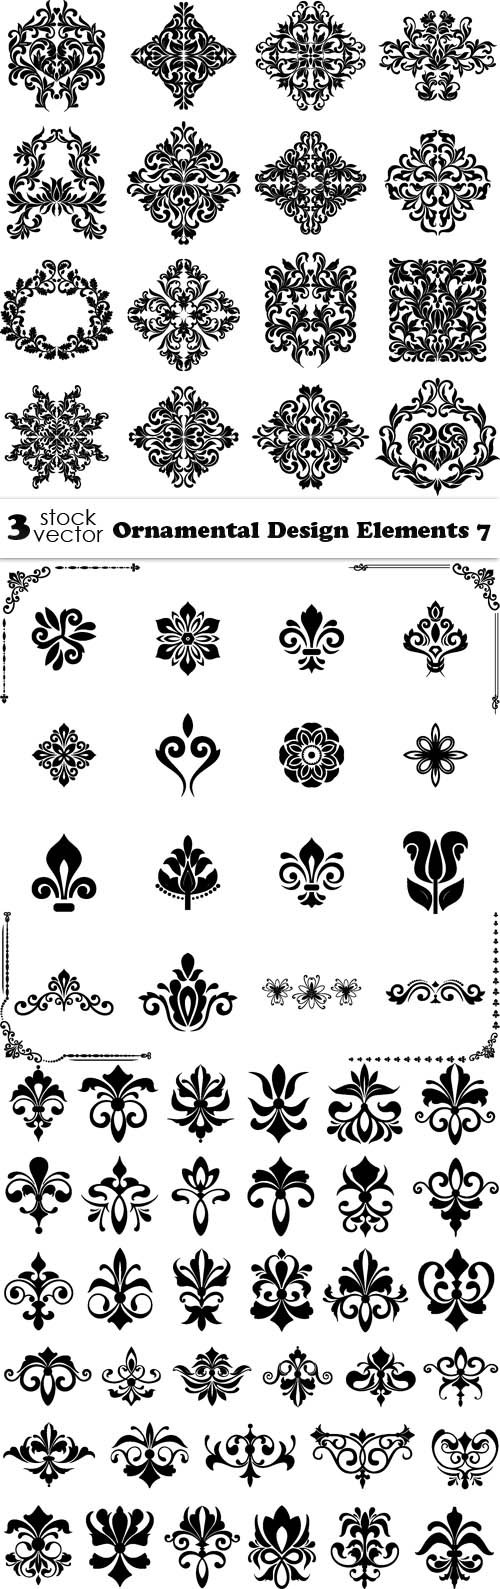 Vectors - Ornamental Design Elements 7